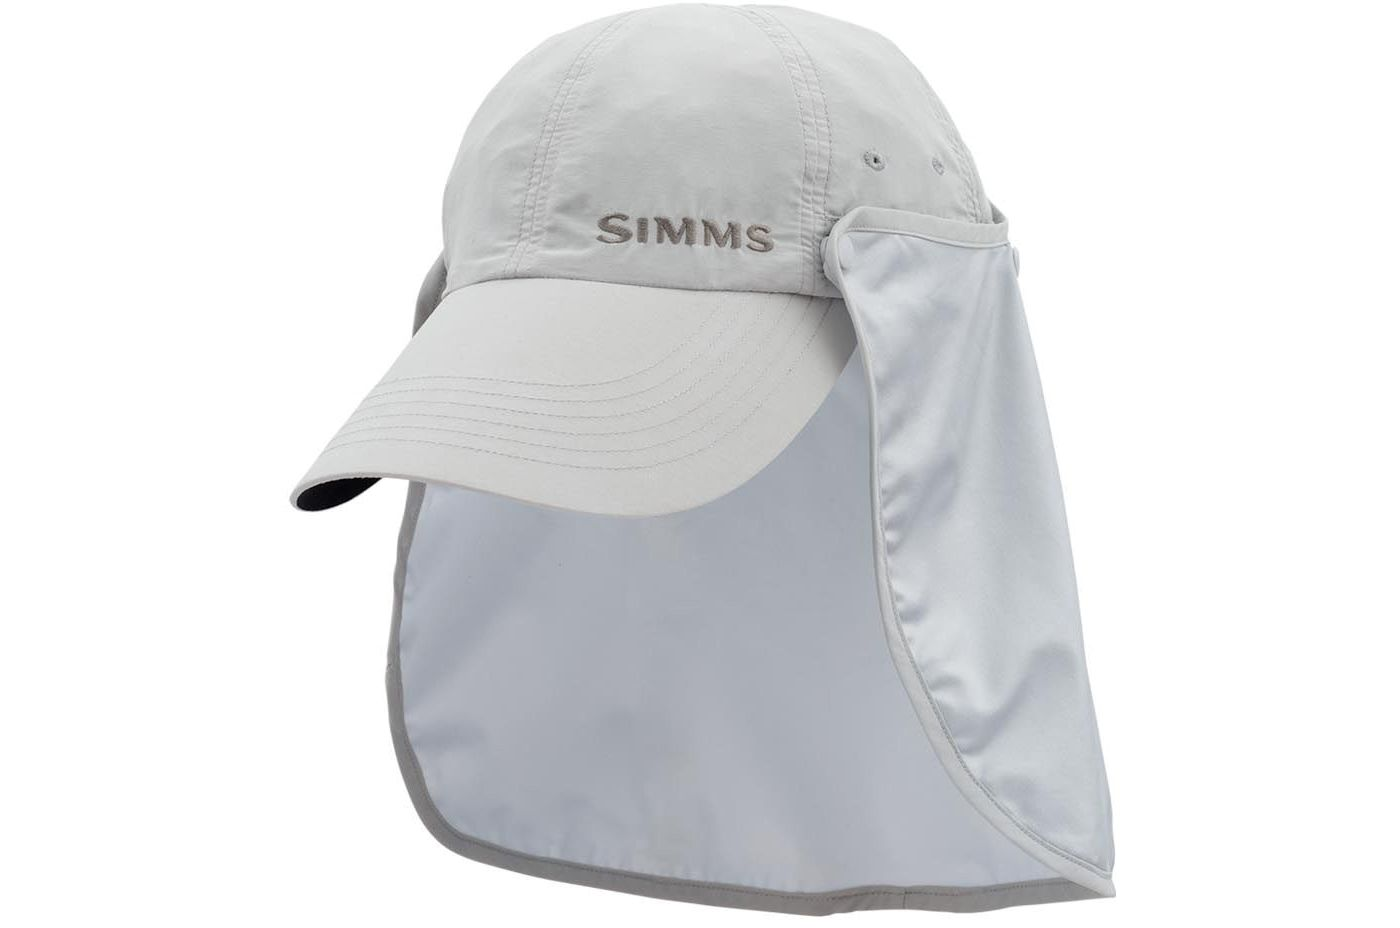 Simms Adult BugStopper SunShield Fishing Hat